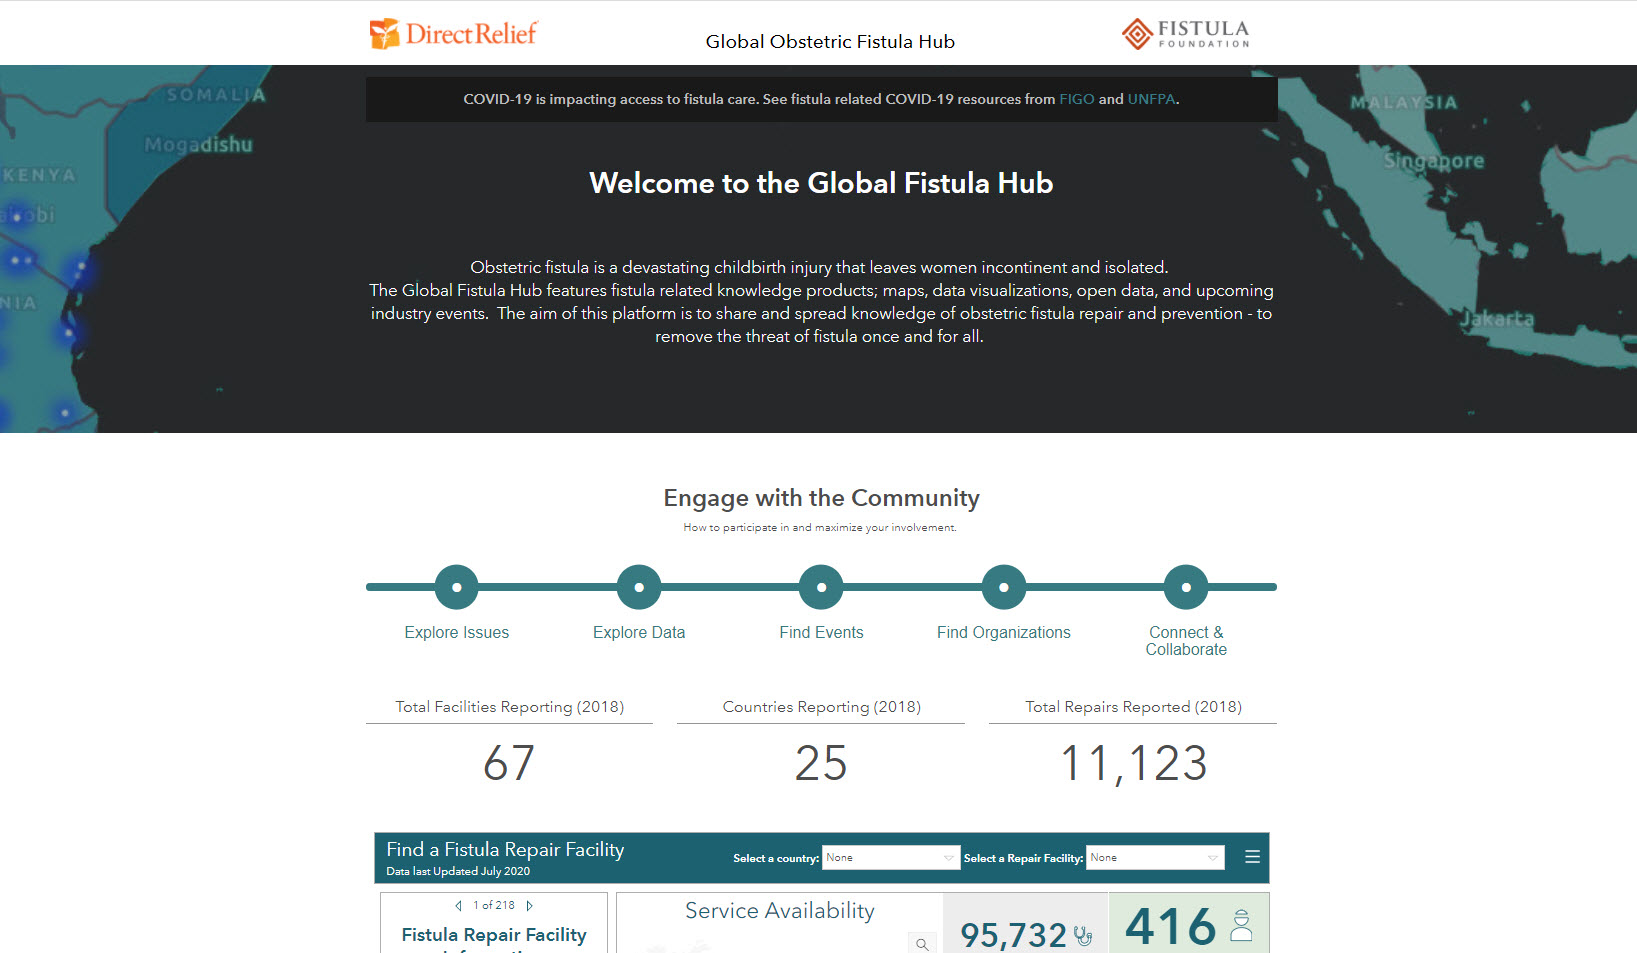 Direct Relief's Global Fistula Hub can be explored above, and is multi-year effort to locate and analyze the global distribution of obstetric fistula surgery.